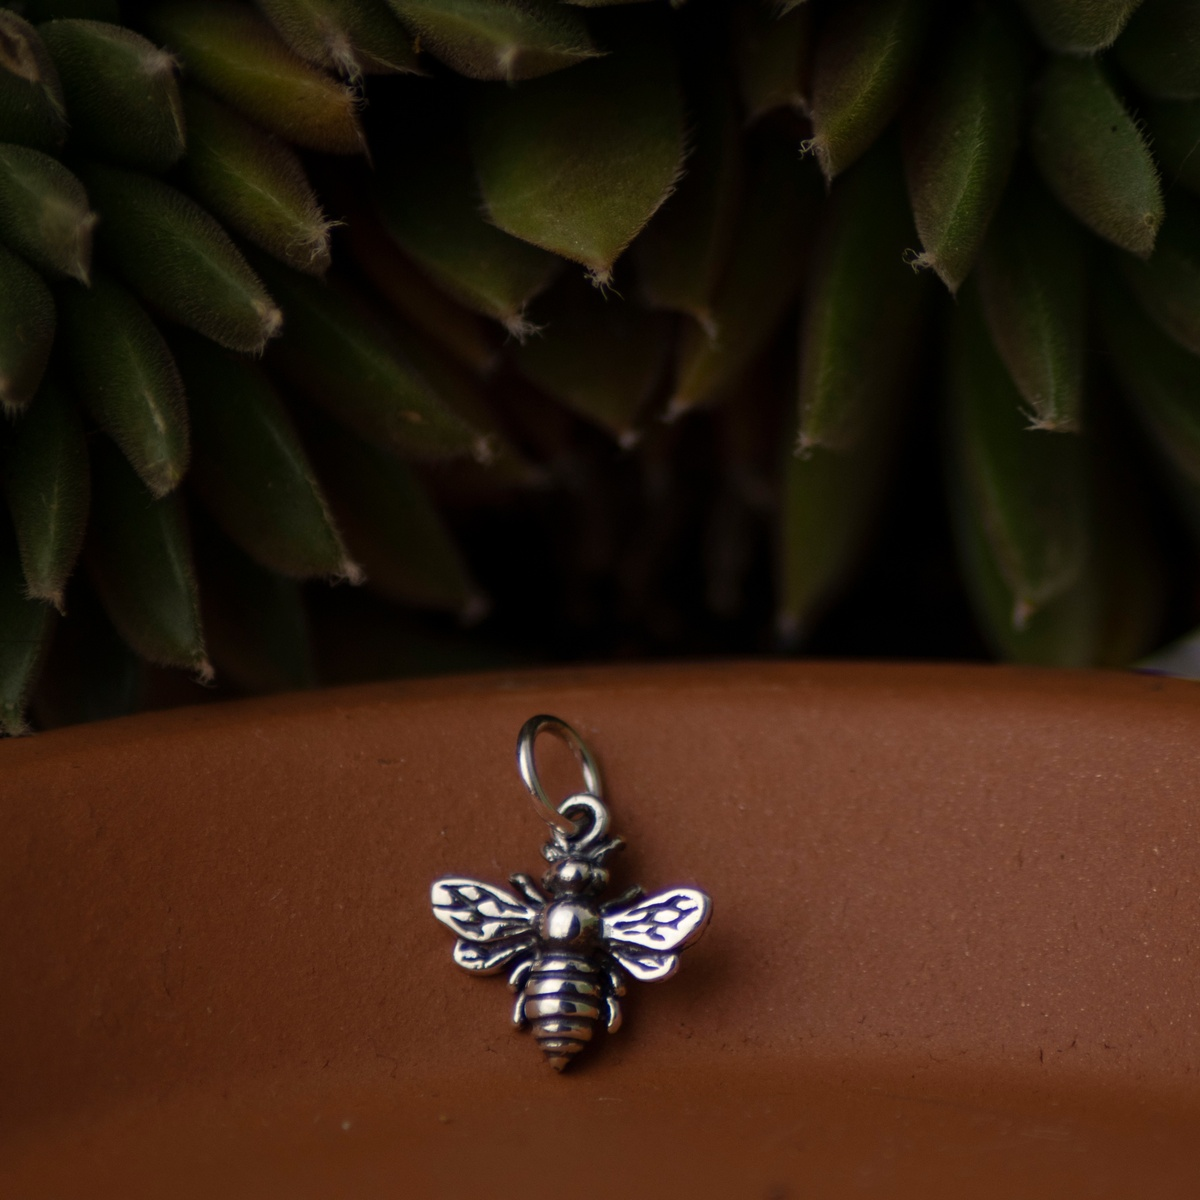 Basic edits: Image with no edits of a bee charm